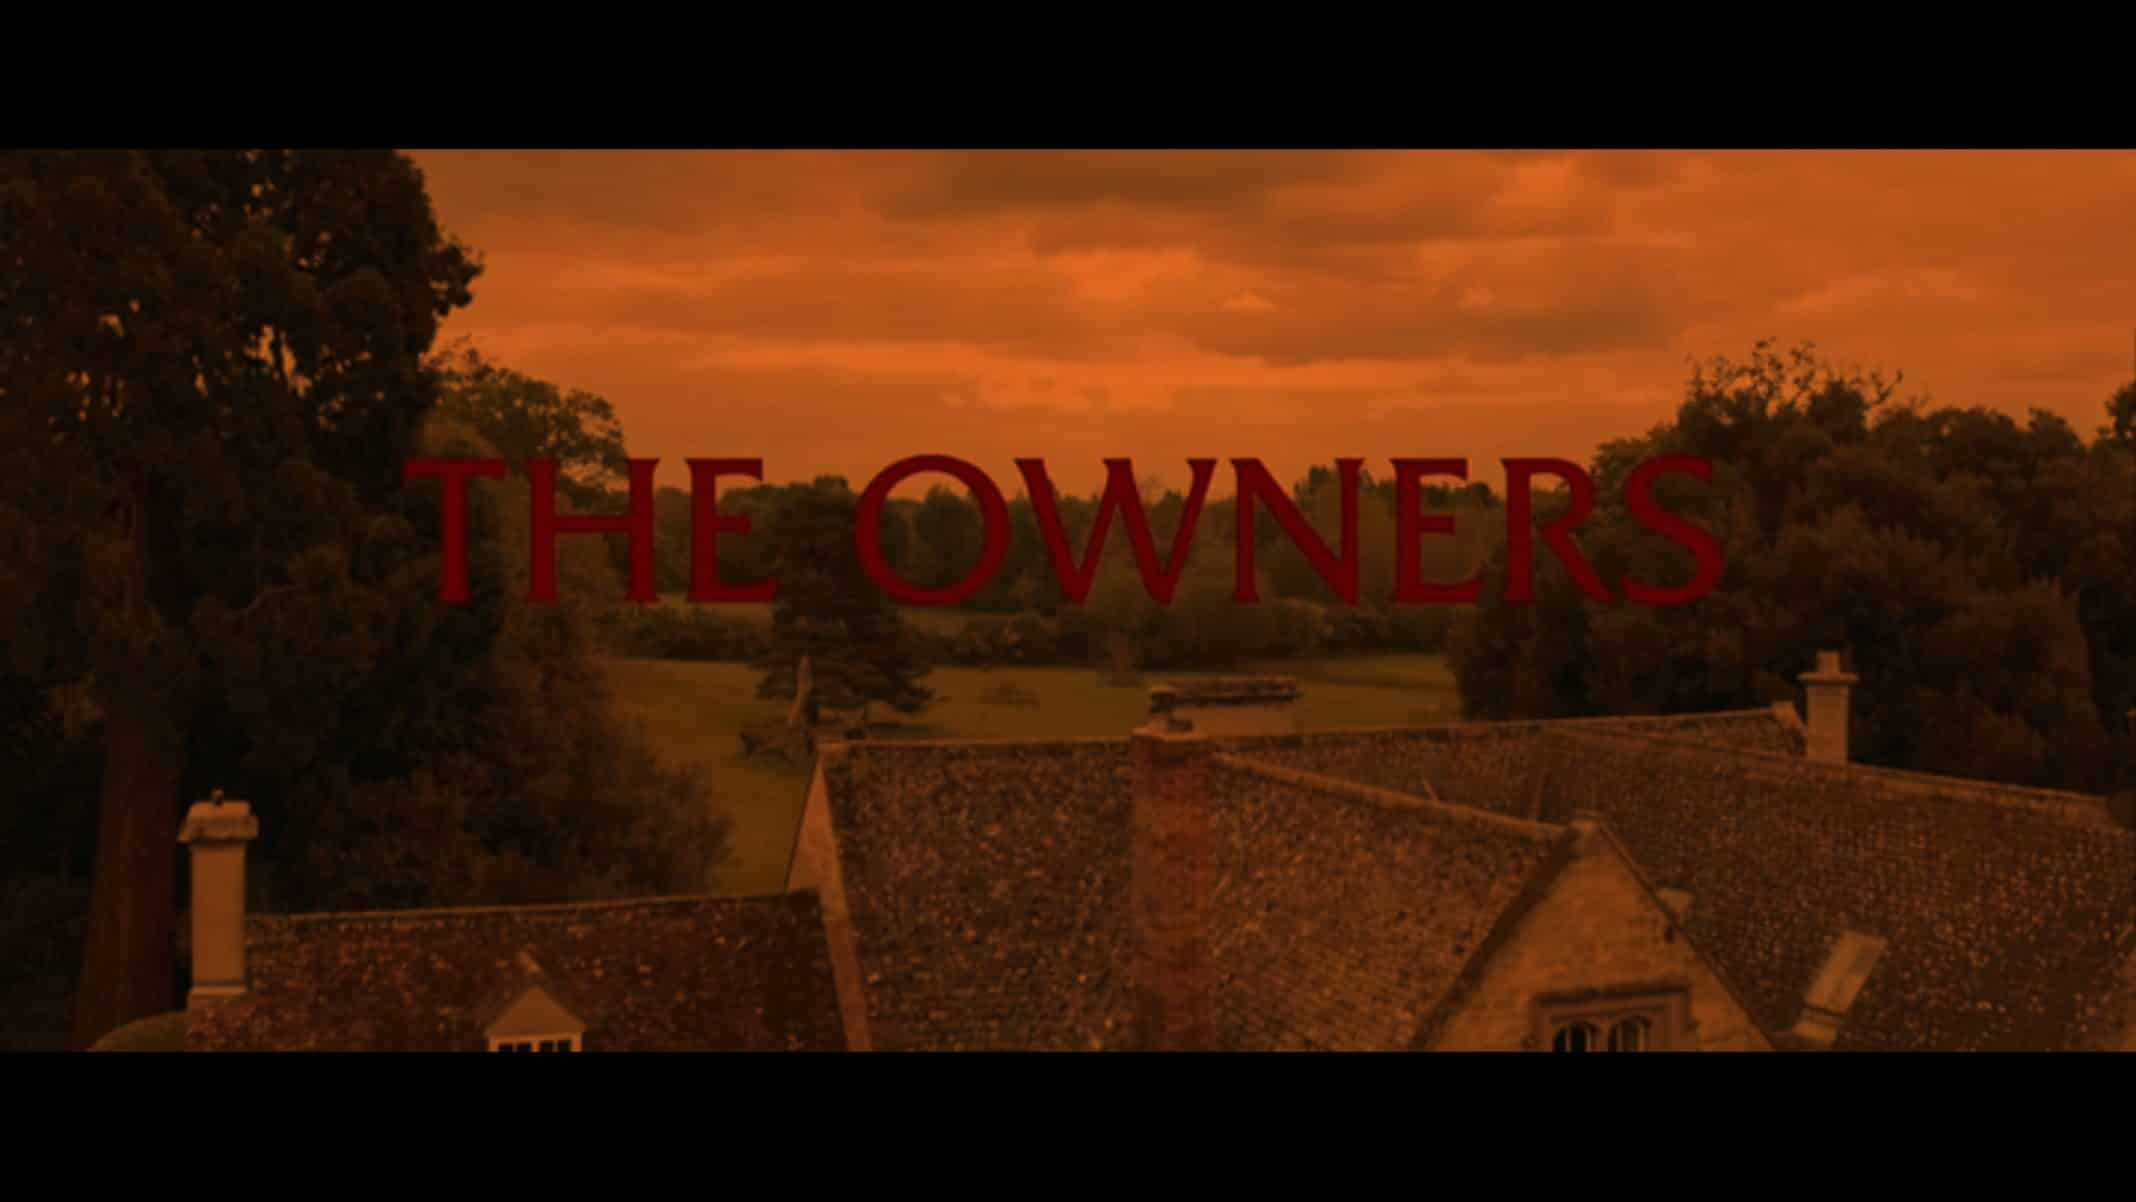 Title Card - The Owners